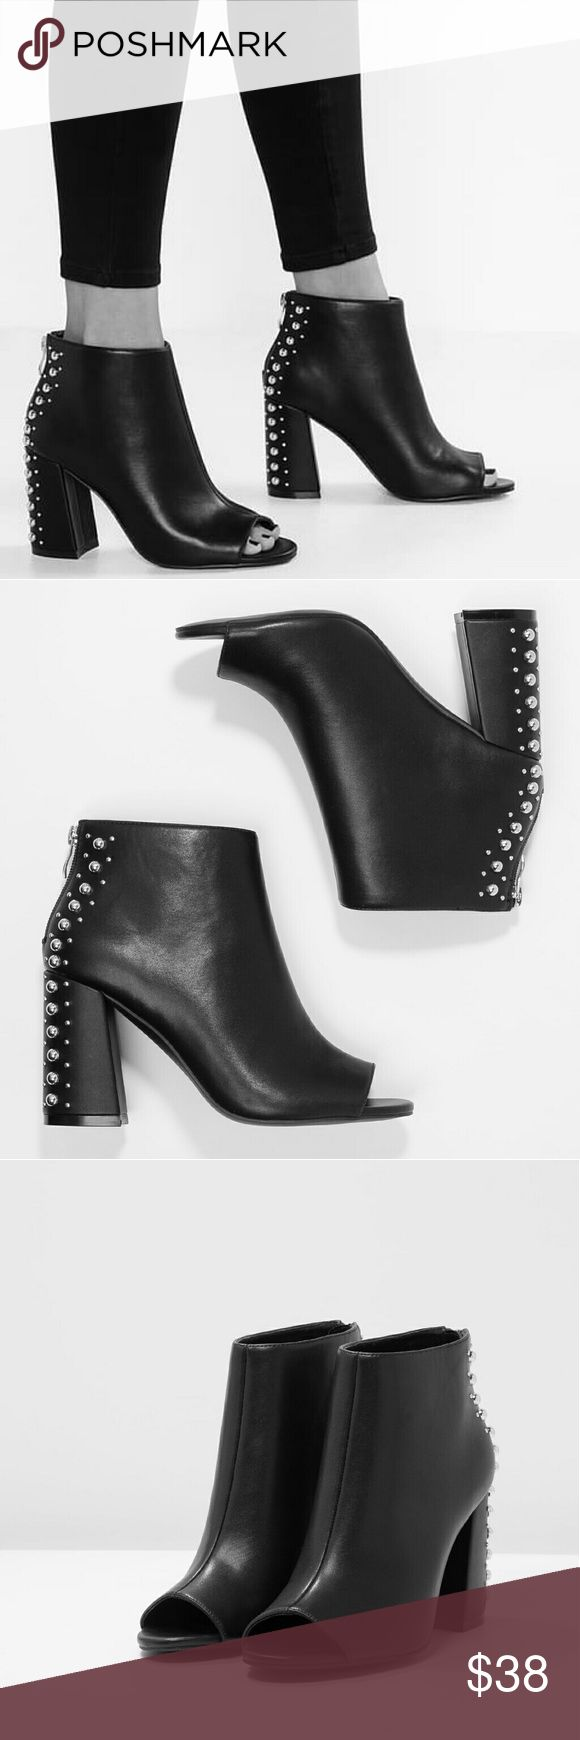 FLASH SALE! Steve Madden Studded Peep Toe Boot High Quality Vegan Leather  Open Toe Block heel Studded back  Zip closure   True to size  NWT in box  Packaged with care Steve Madden Shoes Ankle Boots & Booties